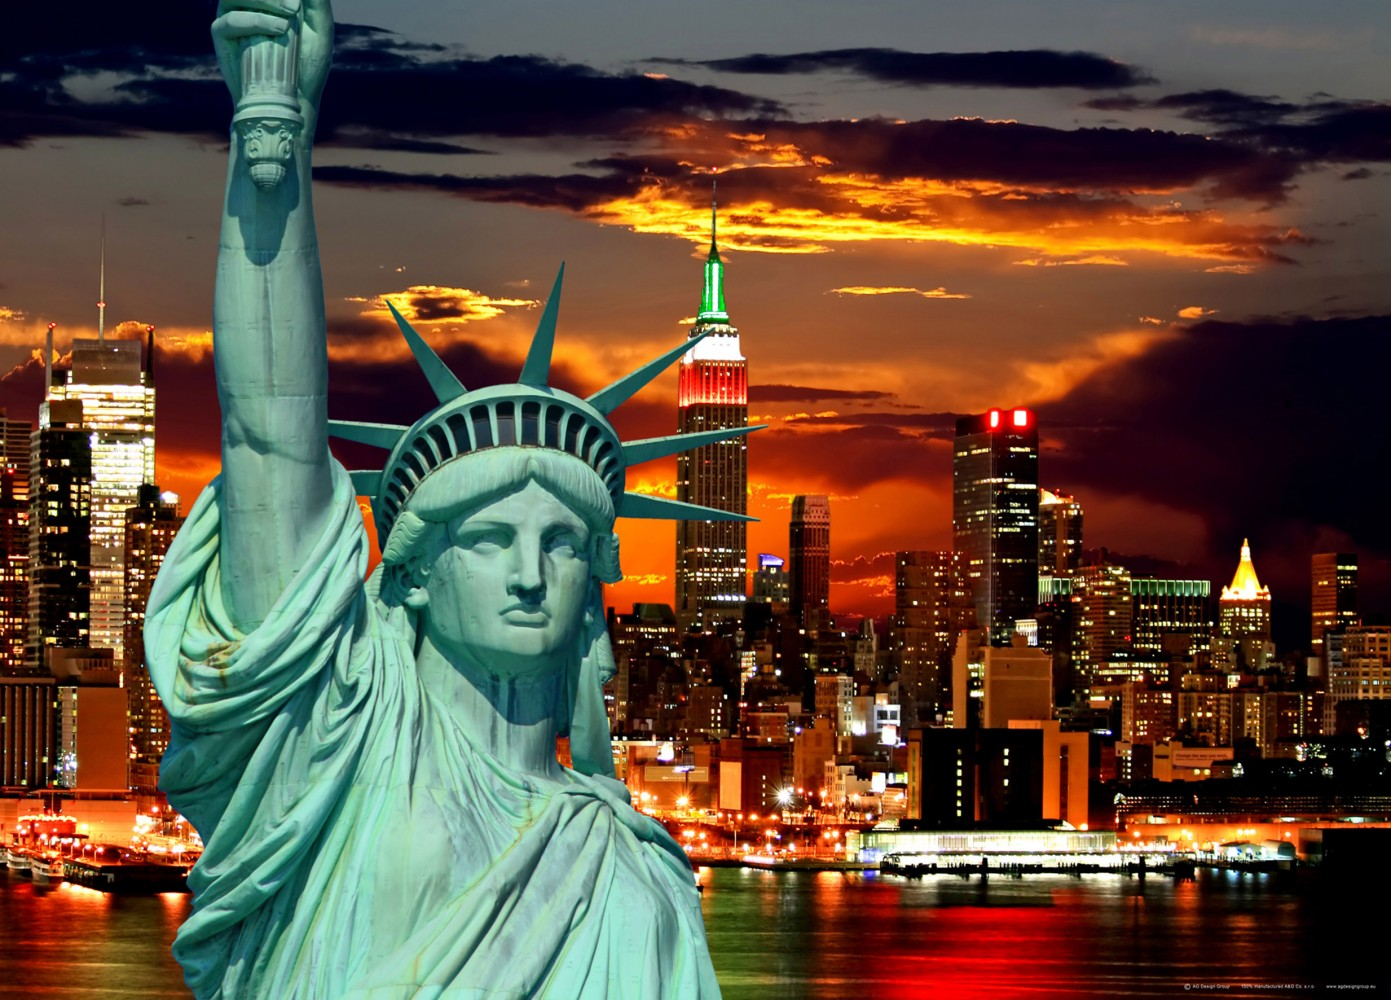 Xxl poster wall mural wallpaper statue of liberty new york for Acheter poster mural new york